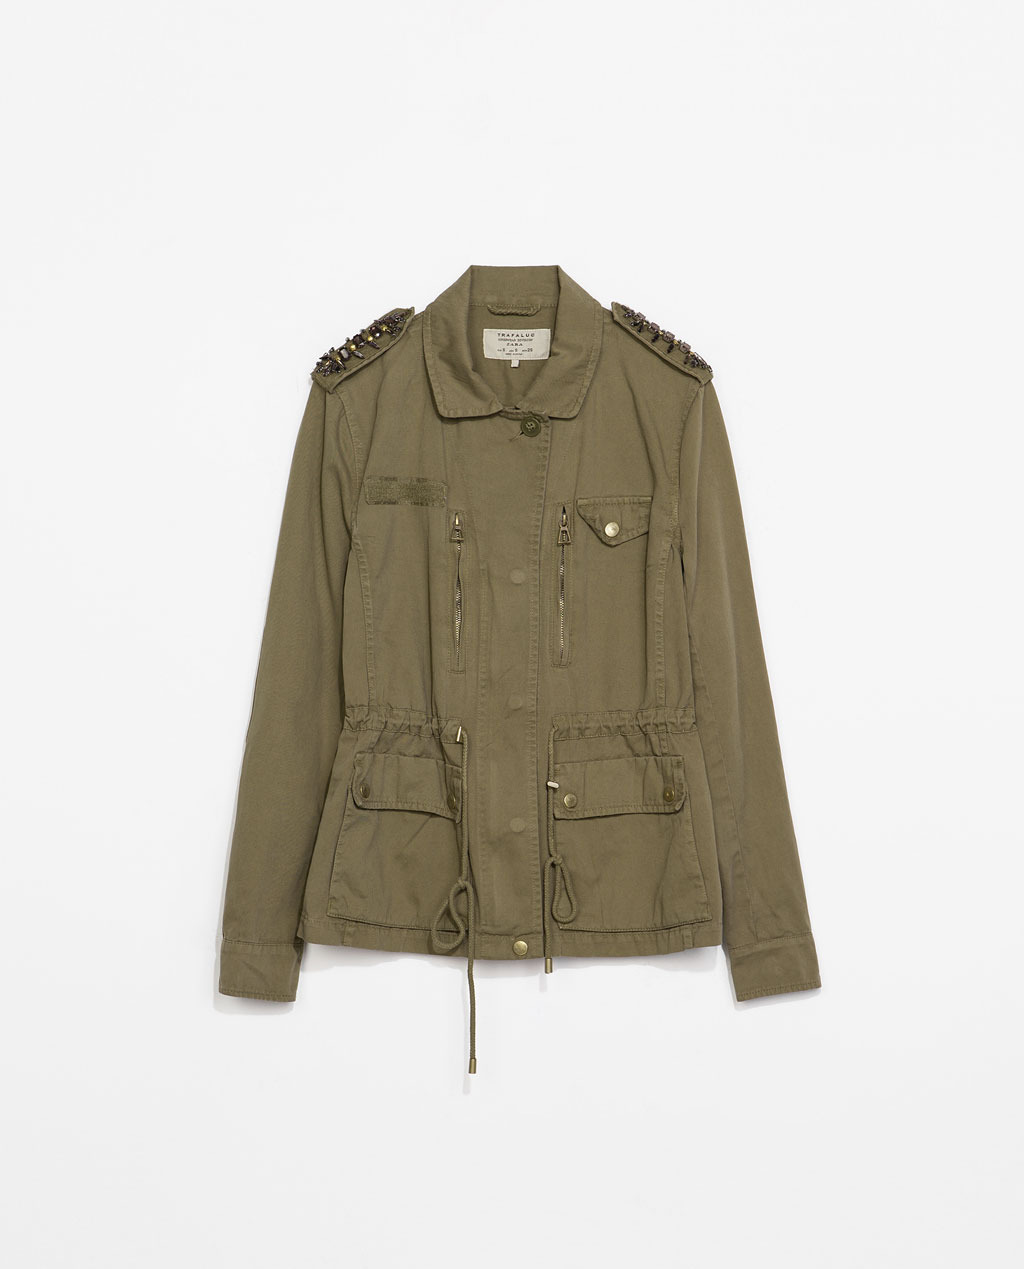 Military Stye Jacket - pattern: plain; shoulder detail: obvious epaulette; length: below the bottom; predominant colour: khaki; occasions: casual, creative work; fit: straight cut (boxy); fibres: cotton - 100%; collar: shirt collar/peter pan/zip with opening; waist detail: belted waist/tie at waist/drawstring; sleeve length: long sleeve; sleeve style: standard; texture group: cotton feel fabrics; collar break: high/illusion of break when open; pattern type: fabric; embellishment: jewels/stone; style: single breasted military jacket; trends: summer sparkle; season: s/s 2014